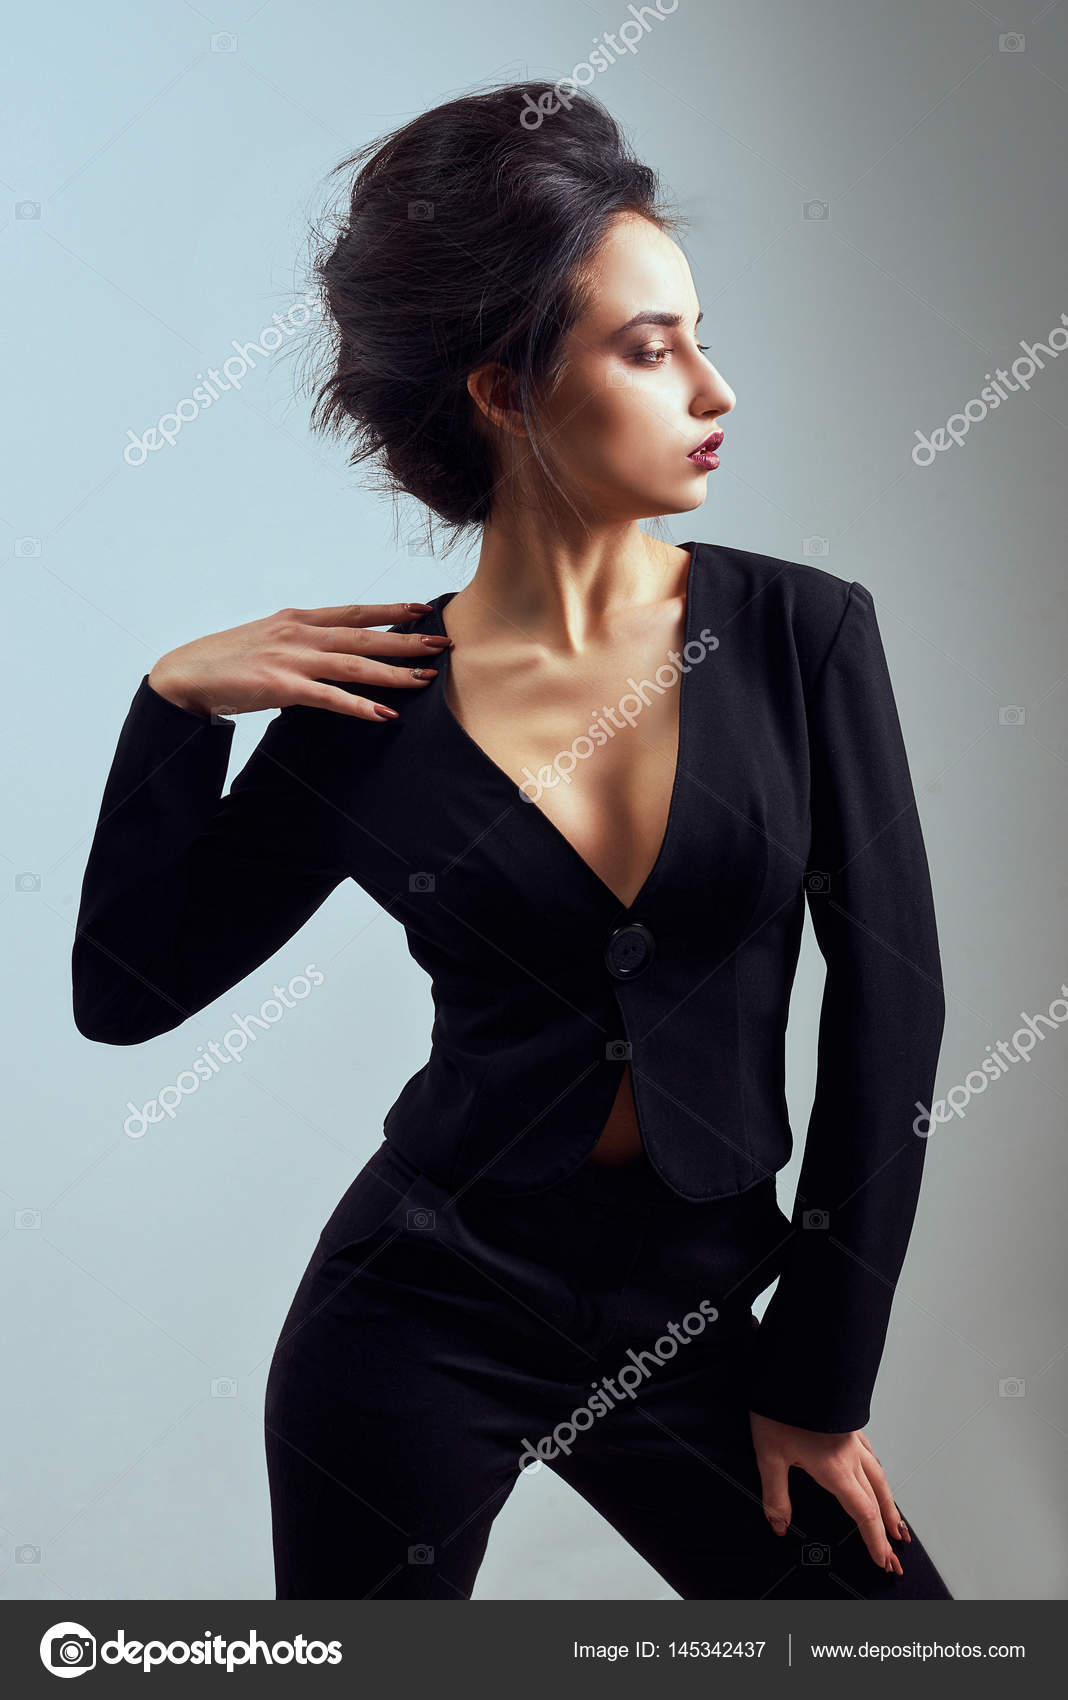 dde0c1bab825b5 Beautiful sexy woman wear silk velvet suit clothes for businesswoman office  style casual girl with dark ...